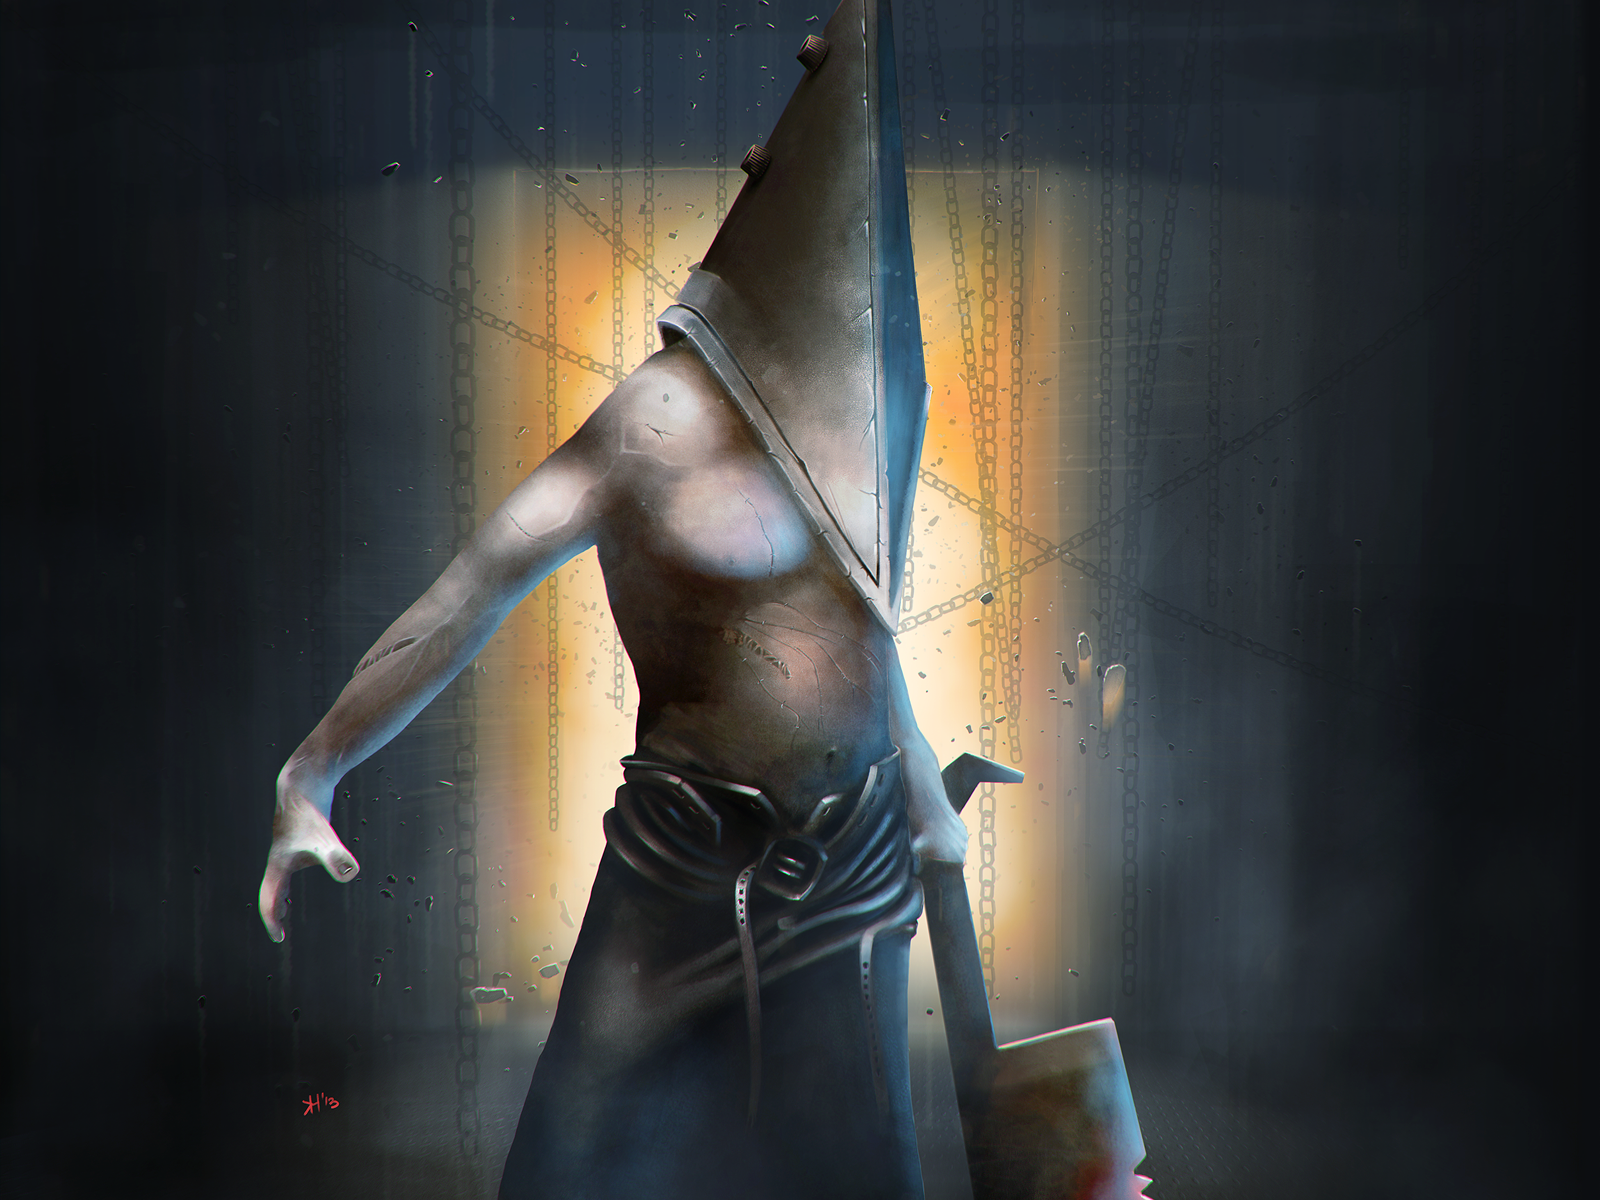 Red pyramid thing